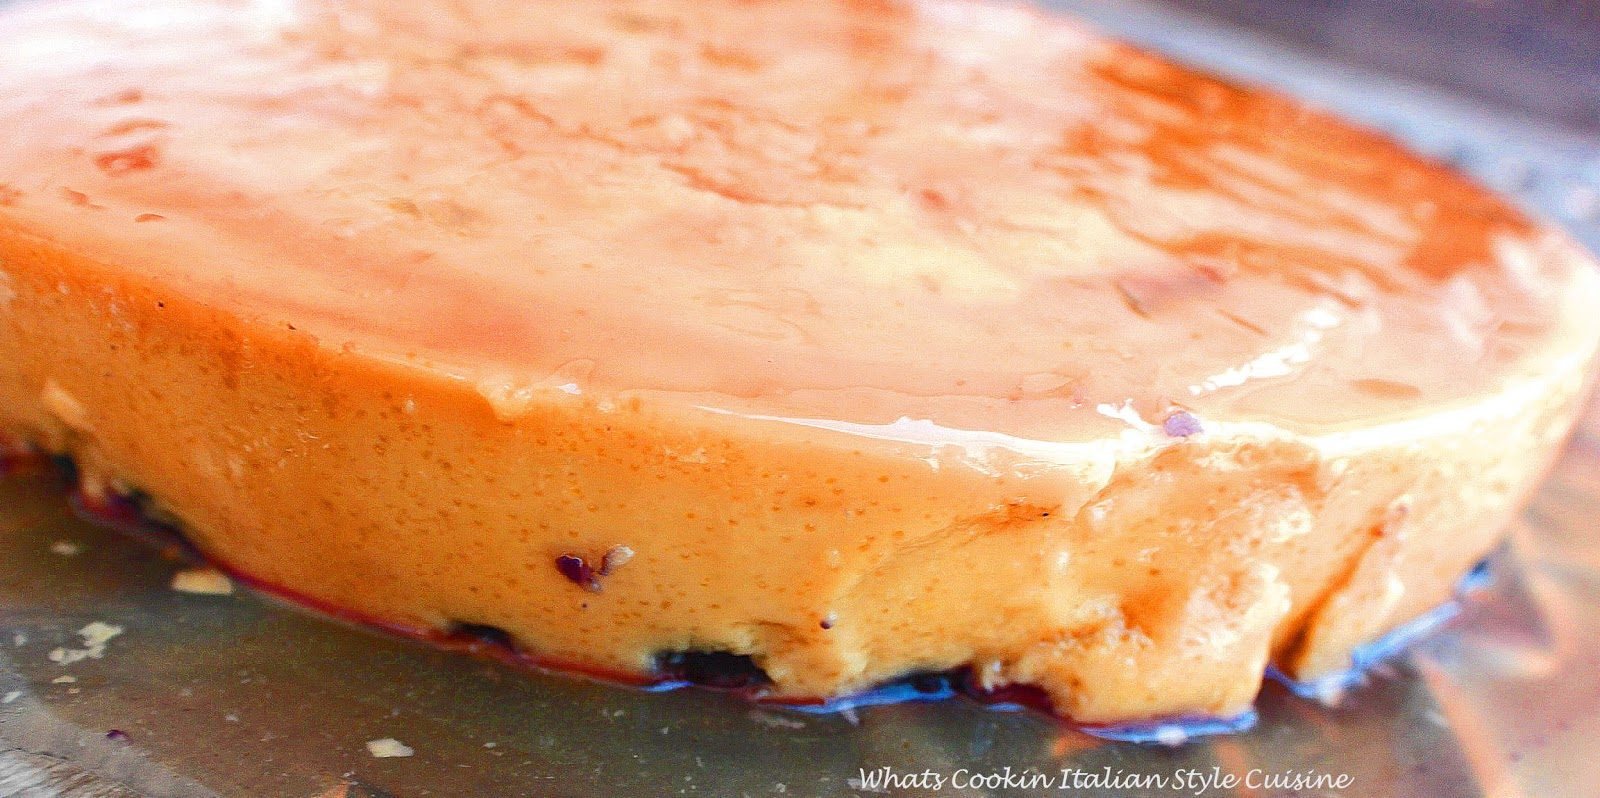 Flan is a Mexican custard baked in a water bath in the oven that creates a syrup in the pan. This is a blueberry flan with decadent custard filling dessert